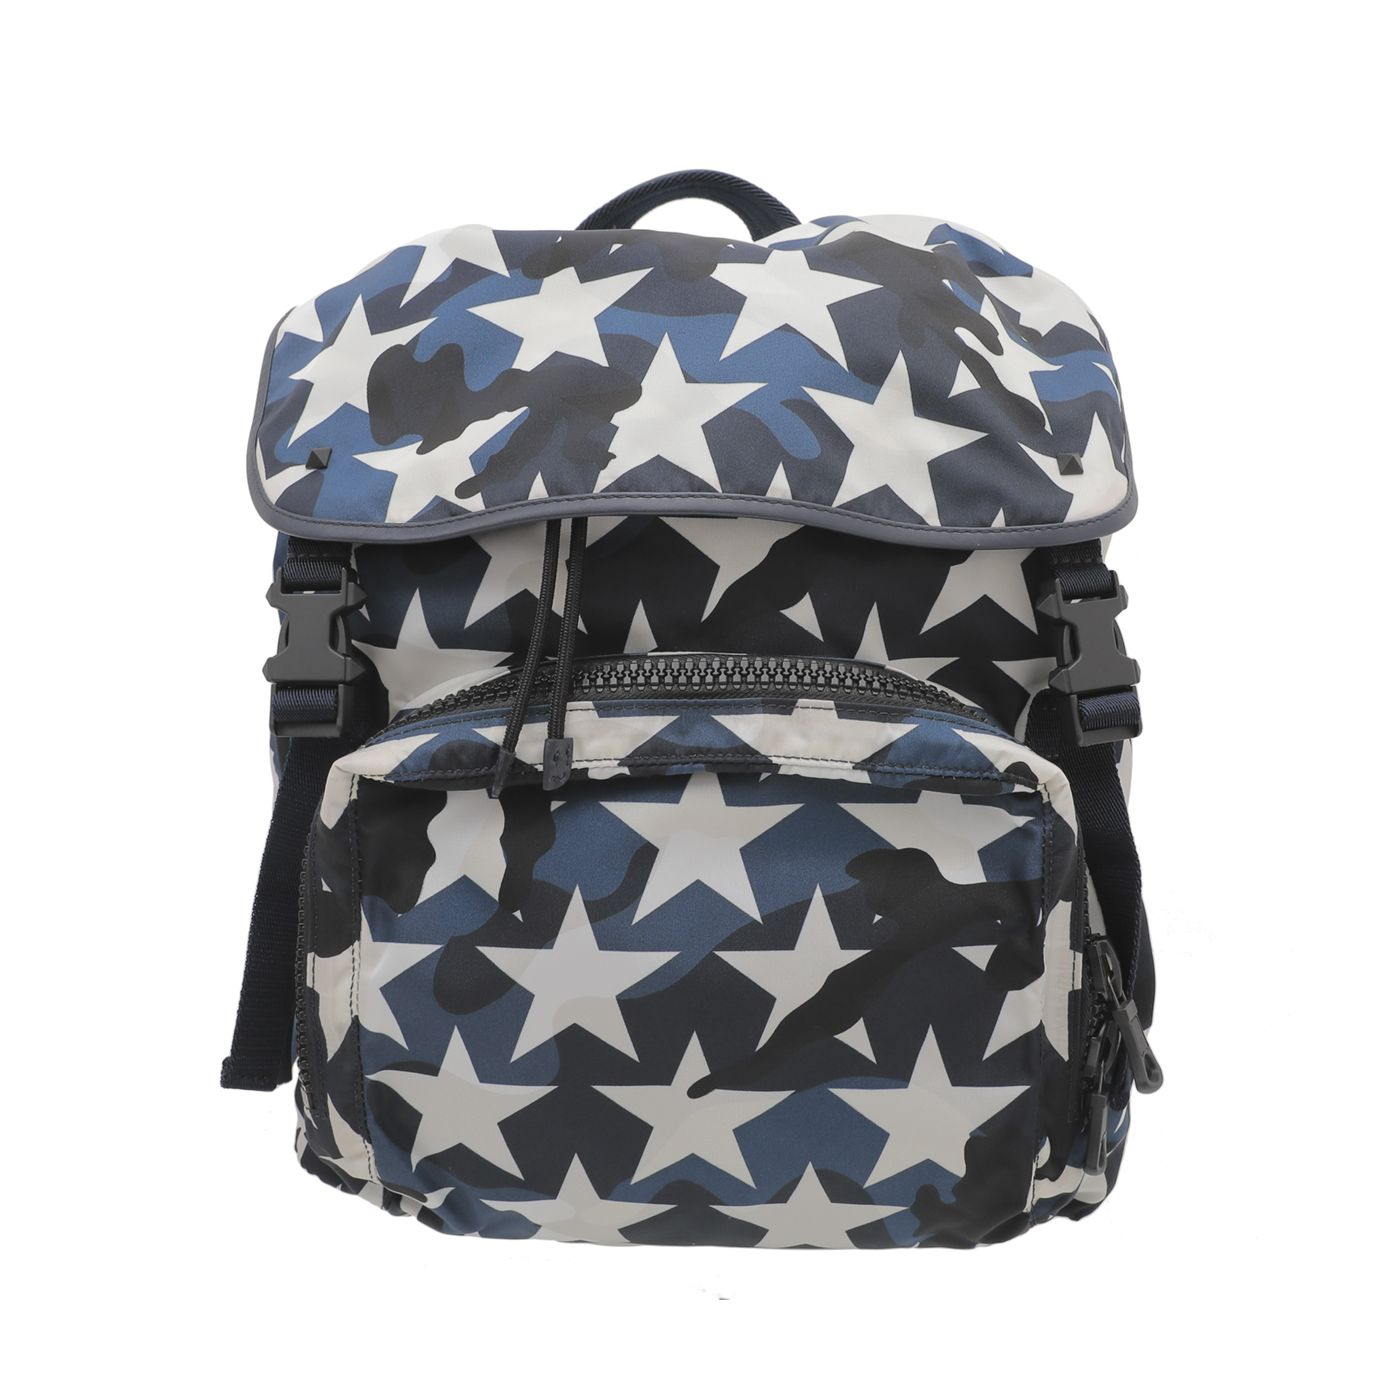 Valentino Tricolor Nylon Star Backpack Bag